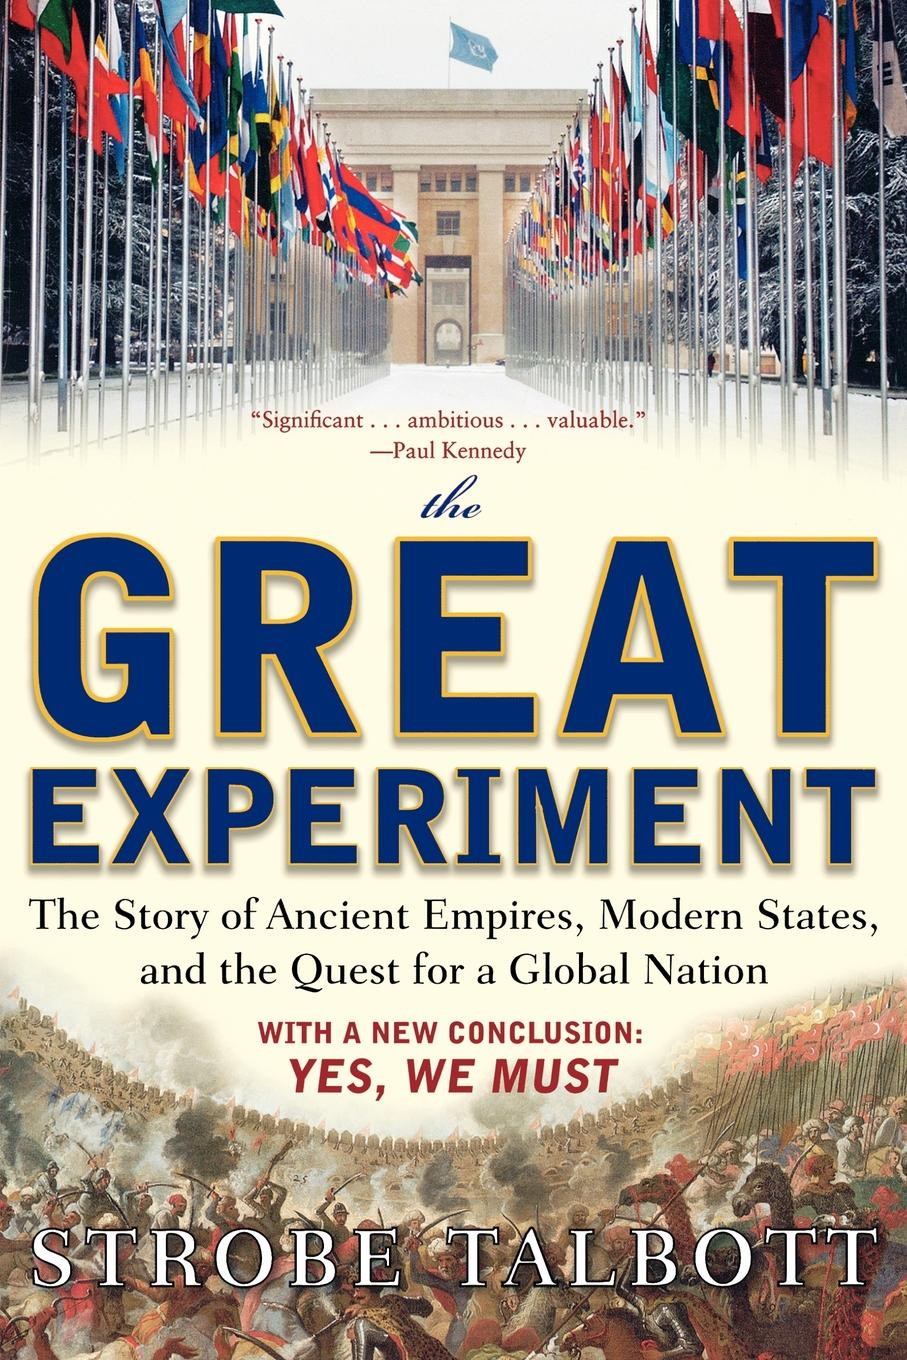 Strobe Talbott The Great Experiment. The Story of Ancient Empires, Modern States, and the Quest for a Global Nation kathryn jones a amway forever the amazing story of a global business phenomenon